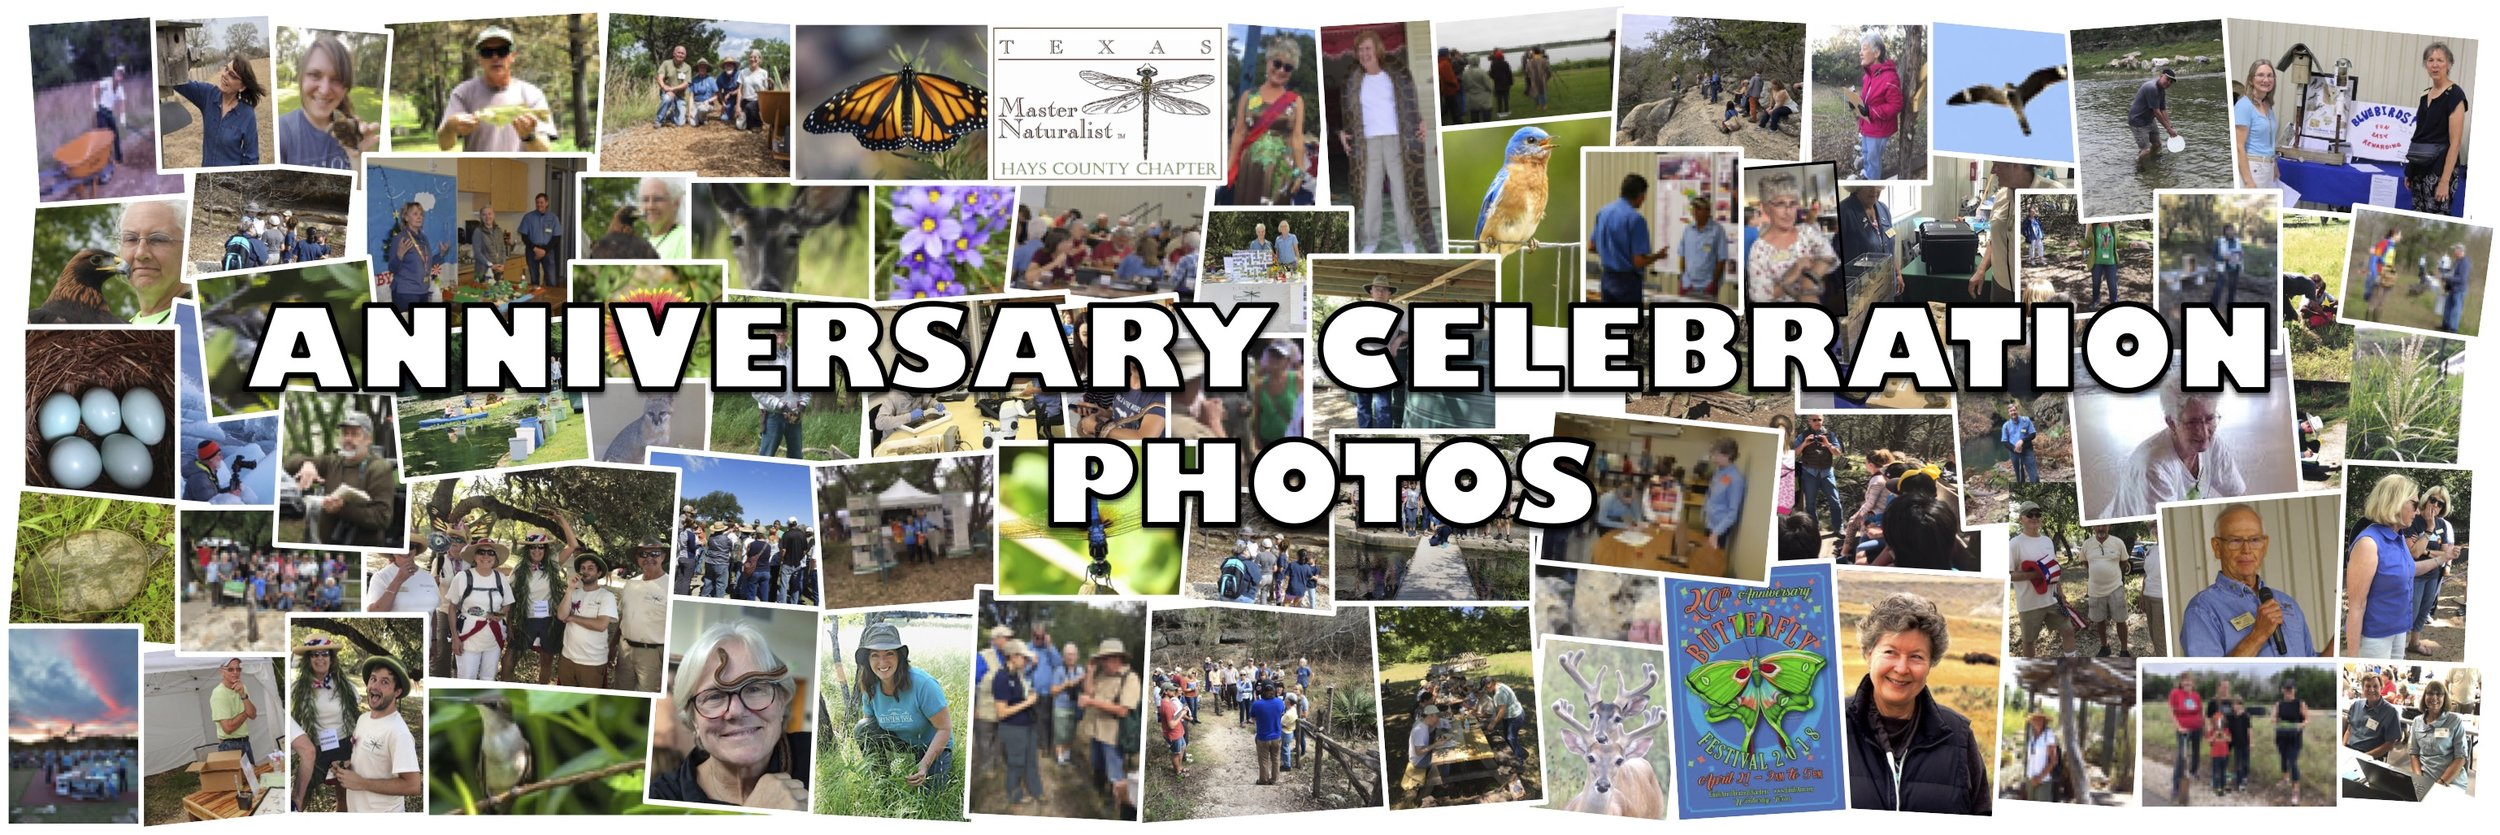 Click on any image to enlarge view and scroll through the Anniversary photos.